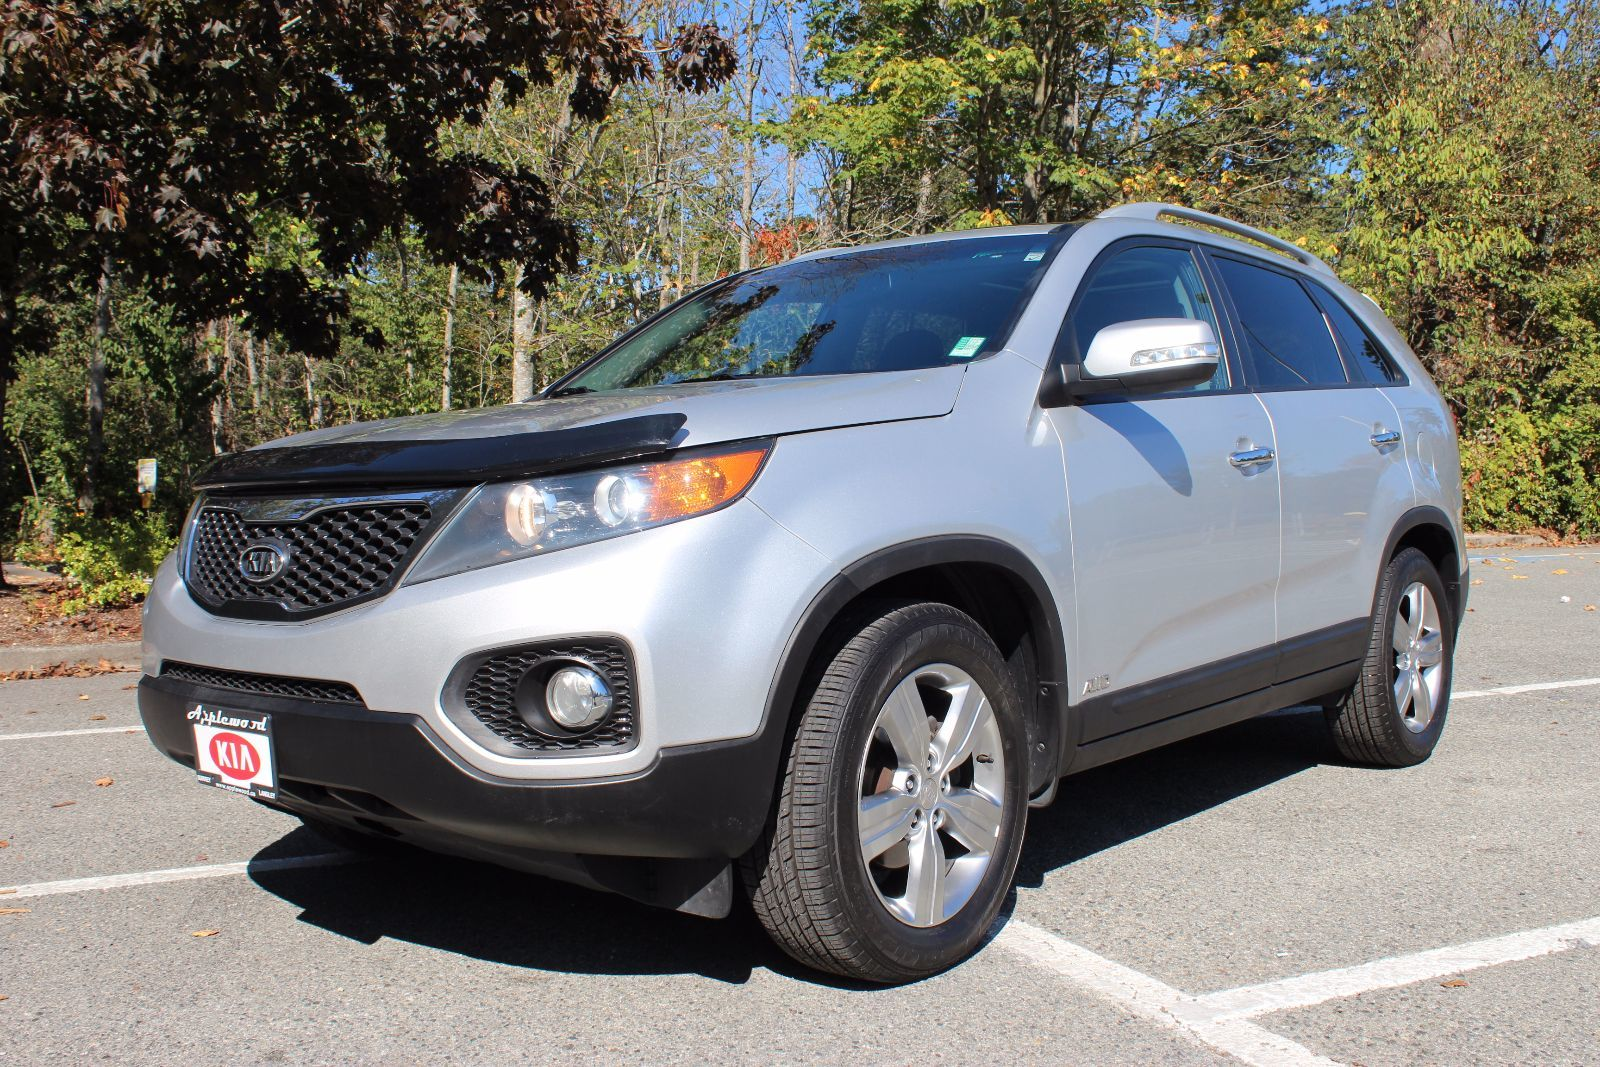 used 2012 kia sorento ex ex luxury awd for sale 18850 0 applewood group 39570. Black Bedroom Furniture Sets. Home Design Ideas